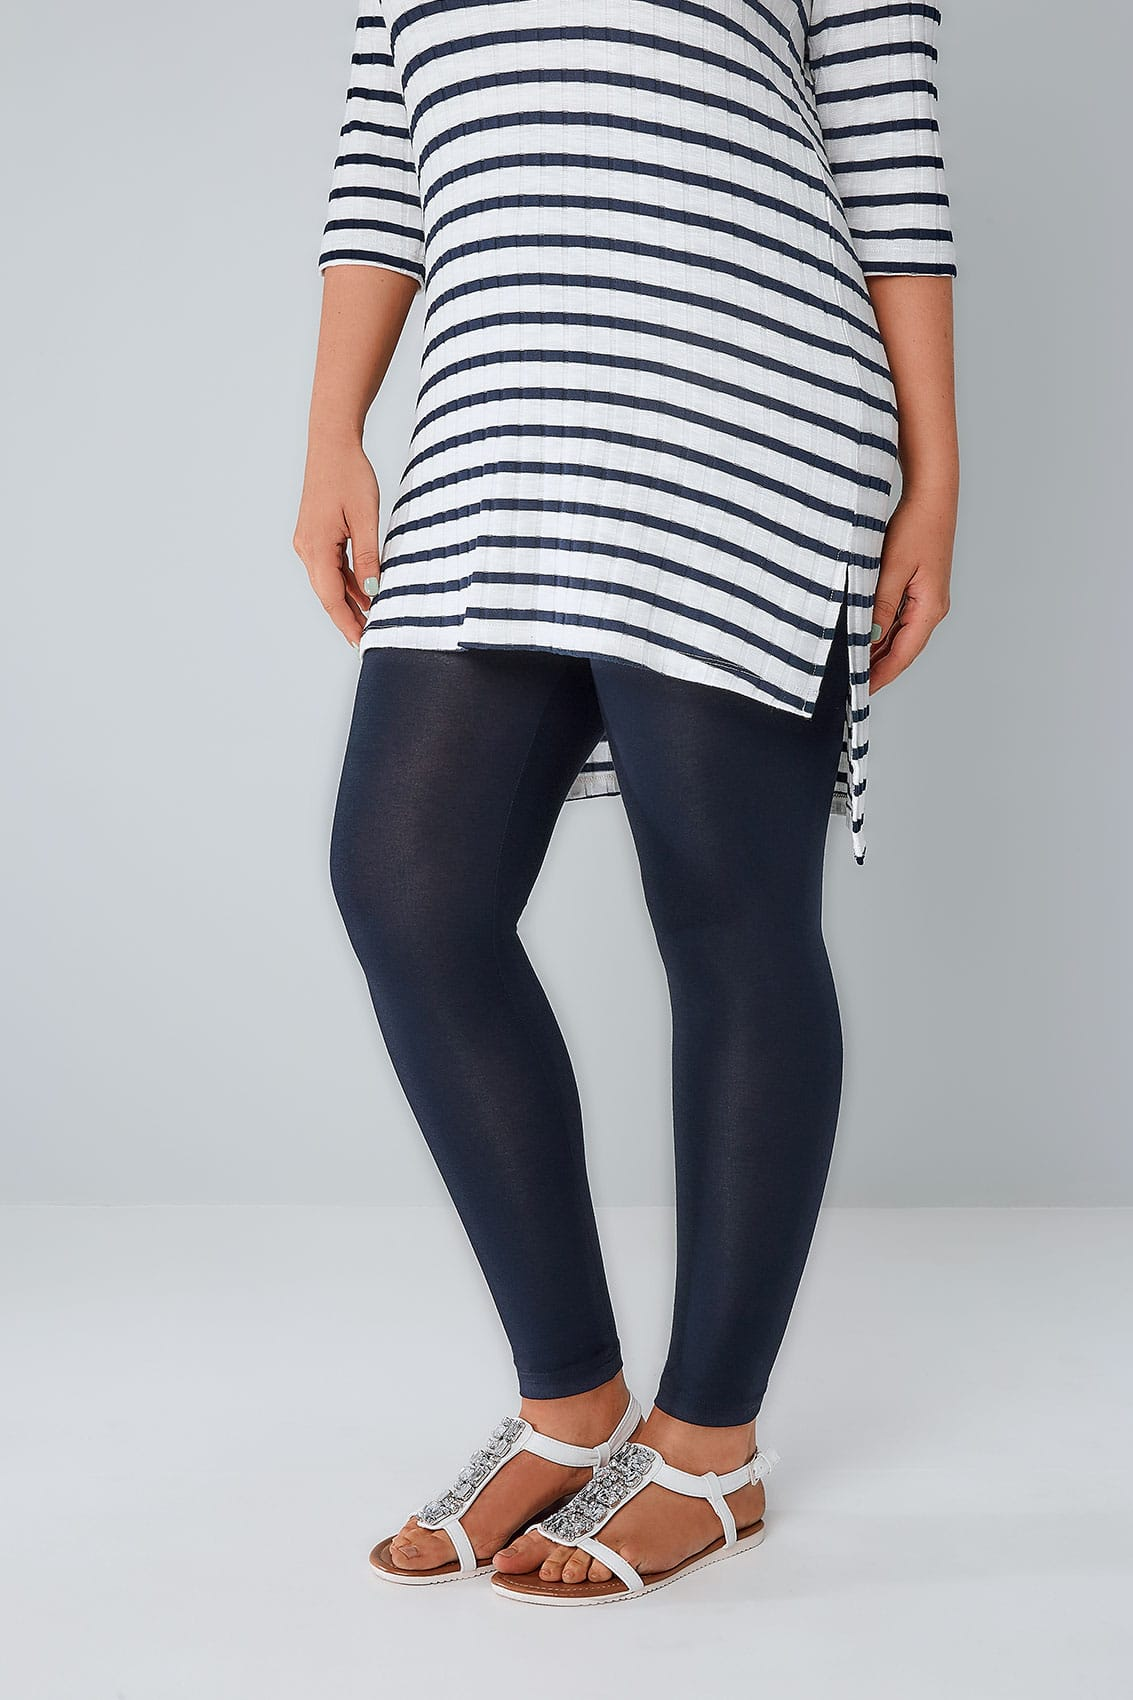 Rooms: Navy Soft Touch Leggings Plus Size 16 To 32